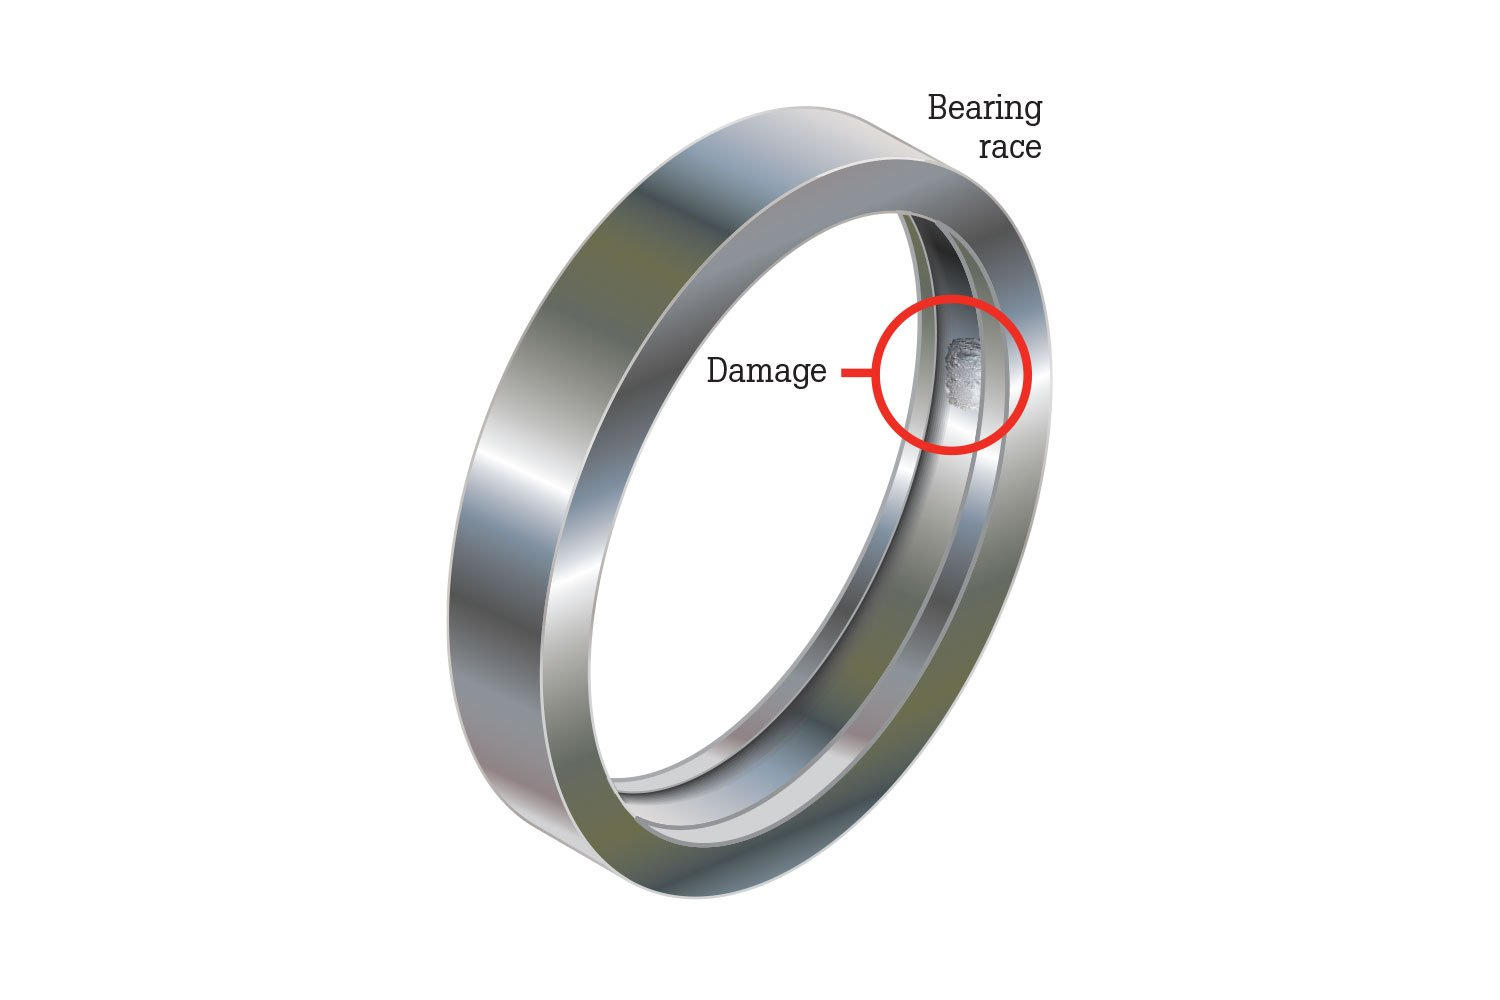 Bearing Race Damage